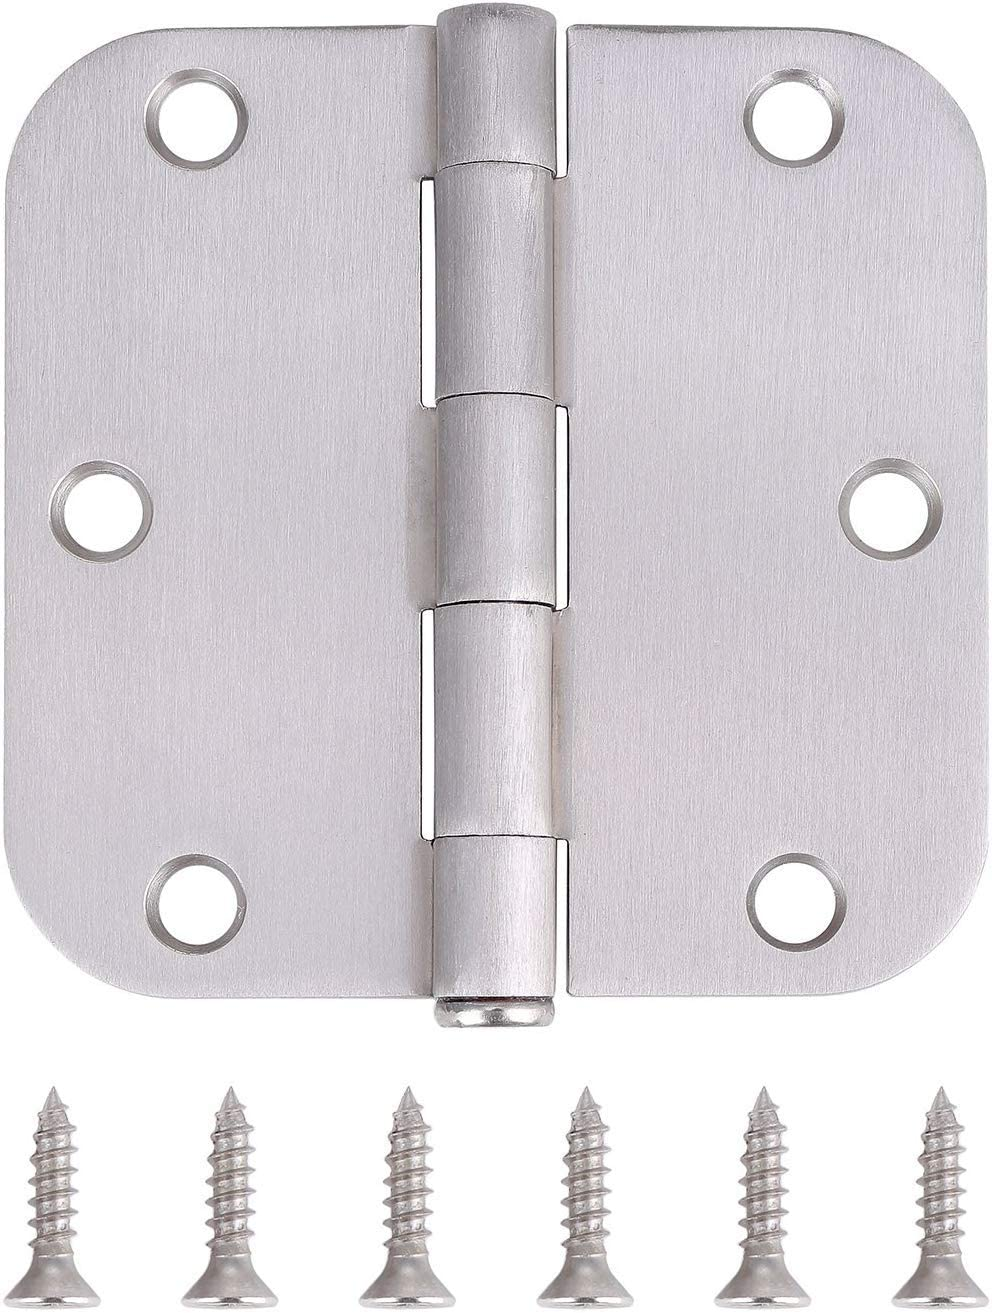 """Pack of 18 Residential Door Hinges - 3.5 Inch - Satin Nickel Finish - 5/8"""" Radius Corner by Dependable Direct"""